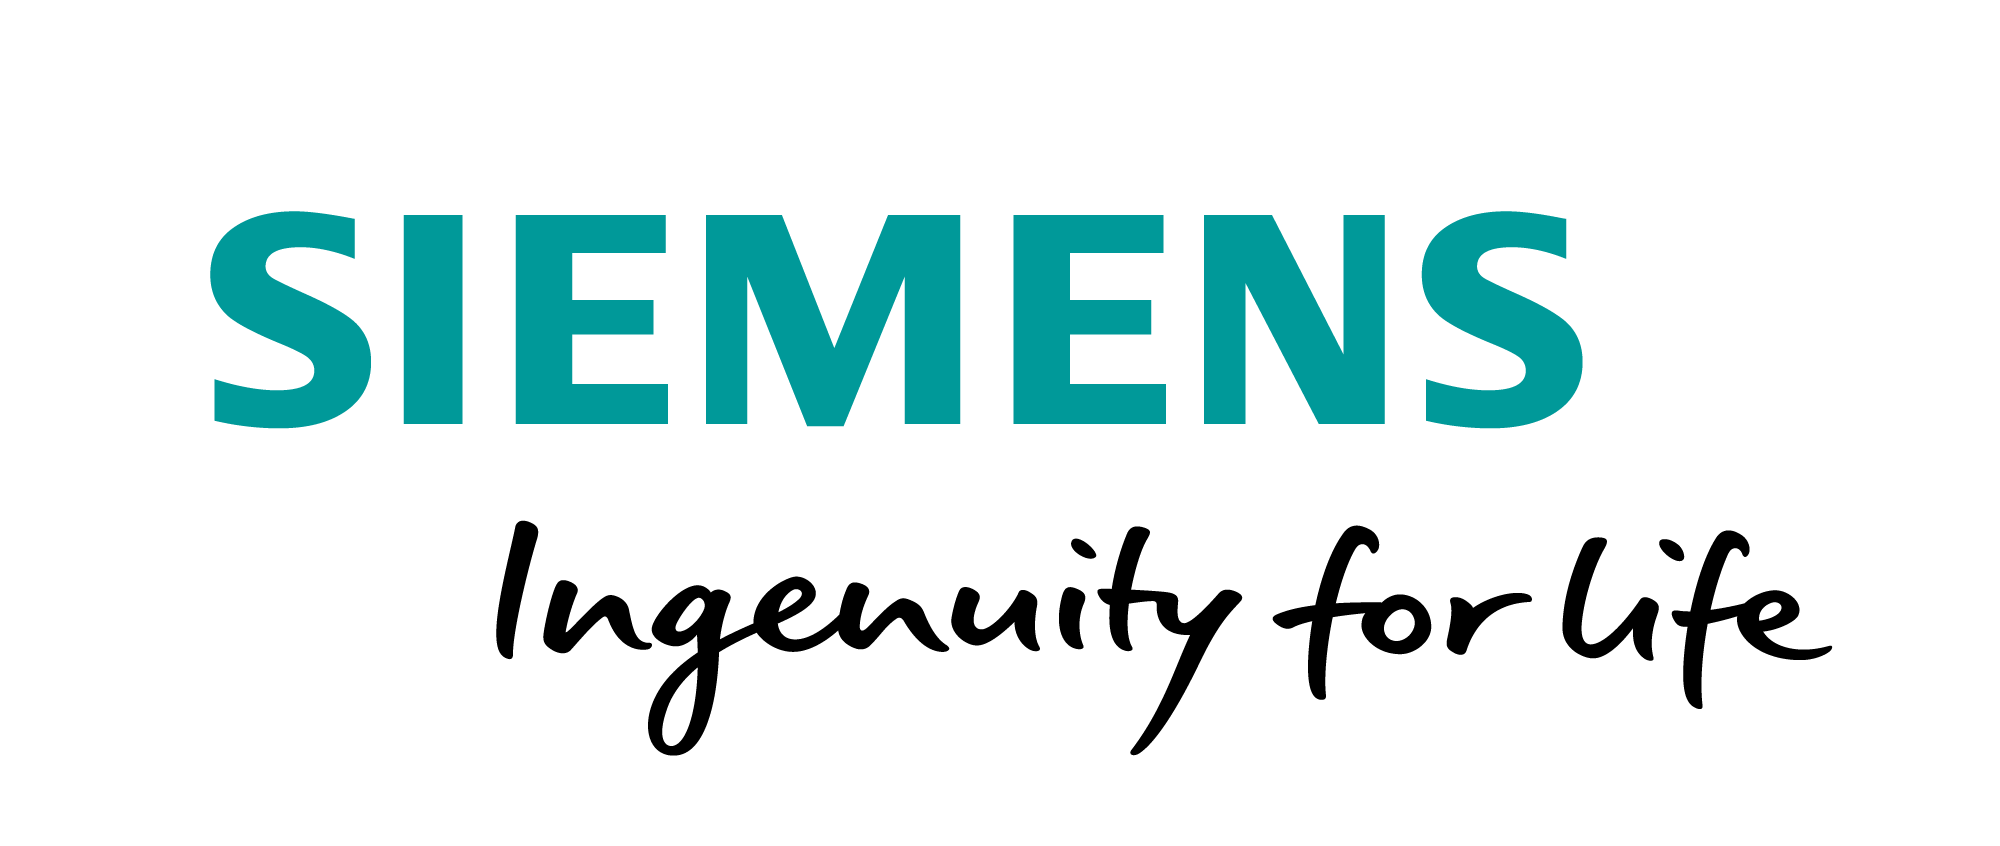 https://www.plm.automation.siemens.com/global/en/